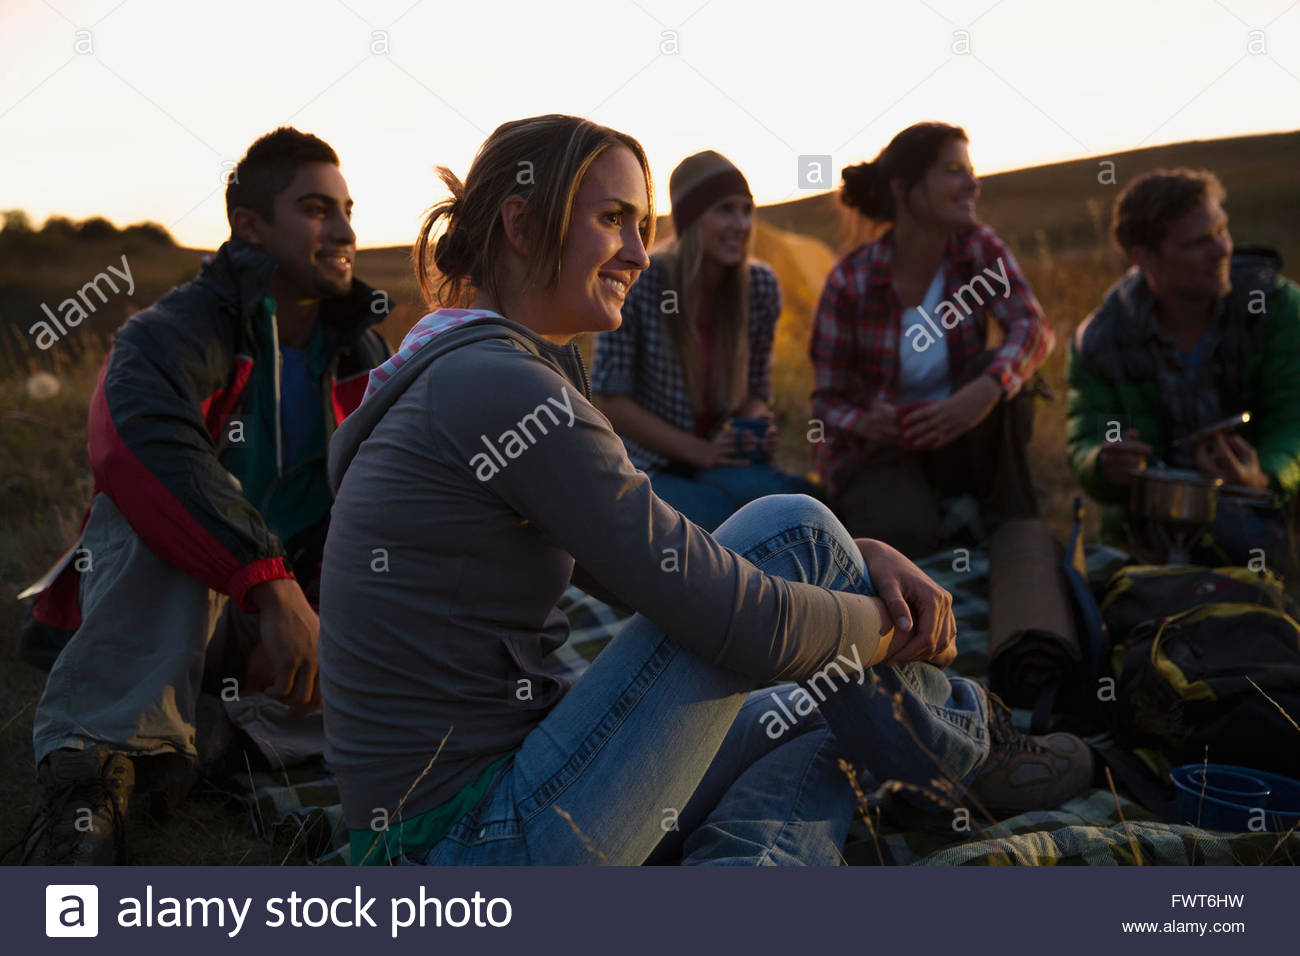 Friends sitting outdoors at dusk. - Stock Image